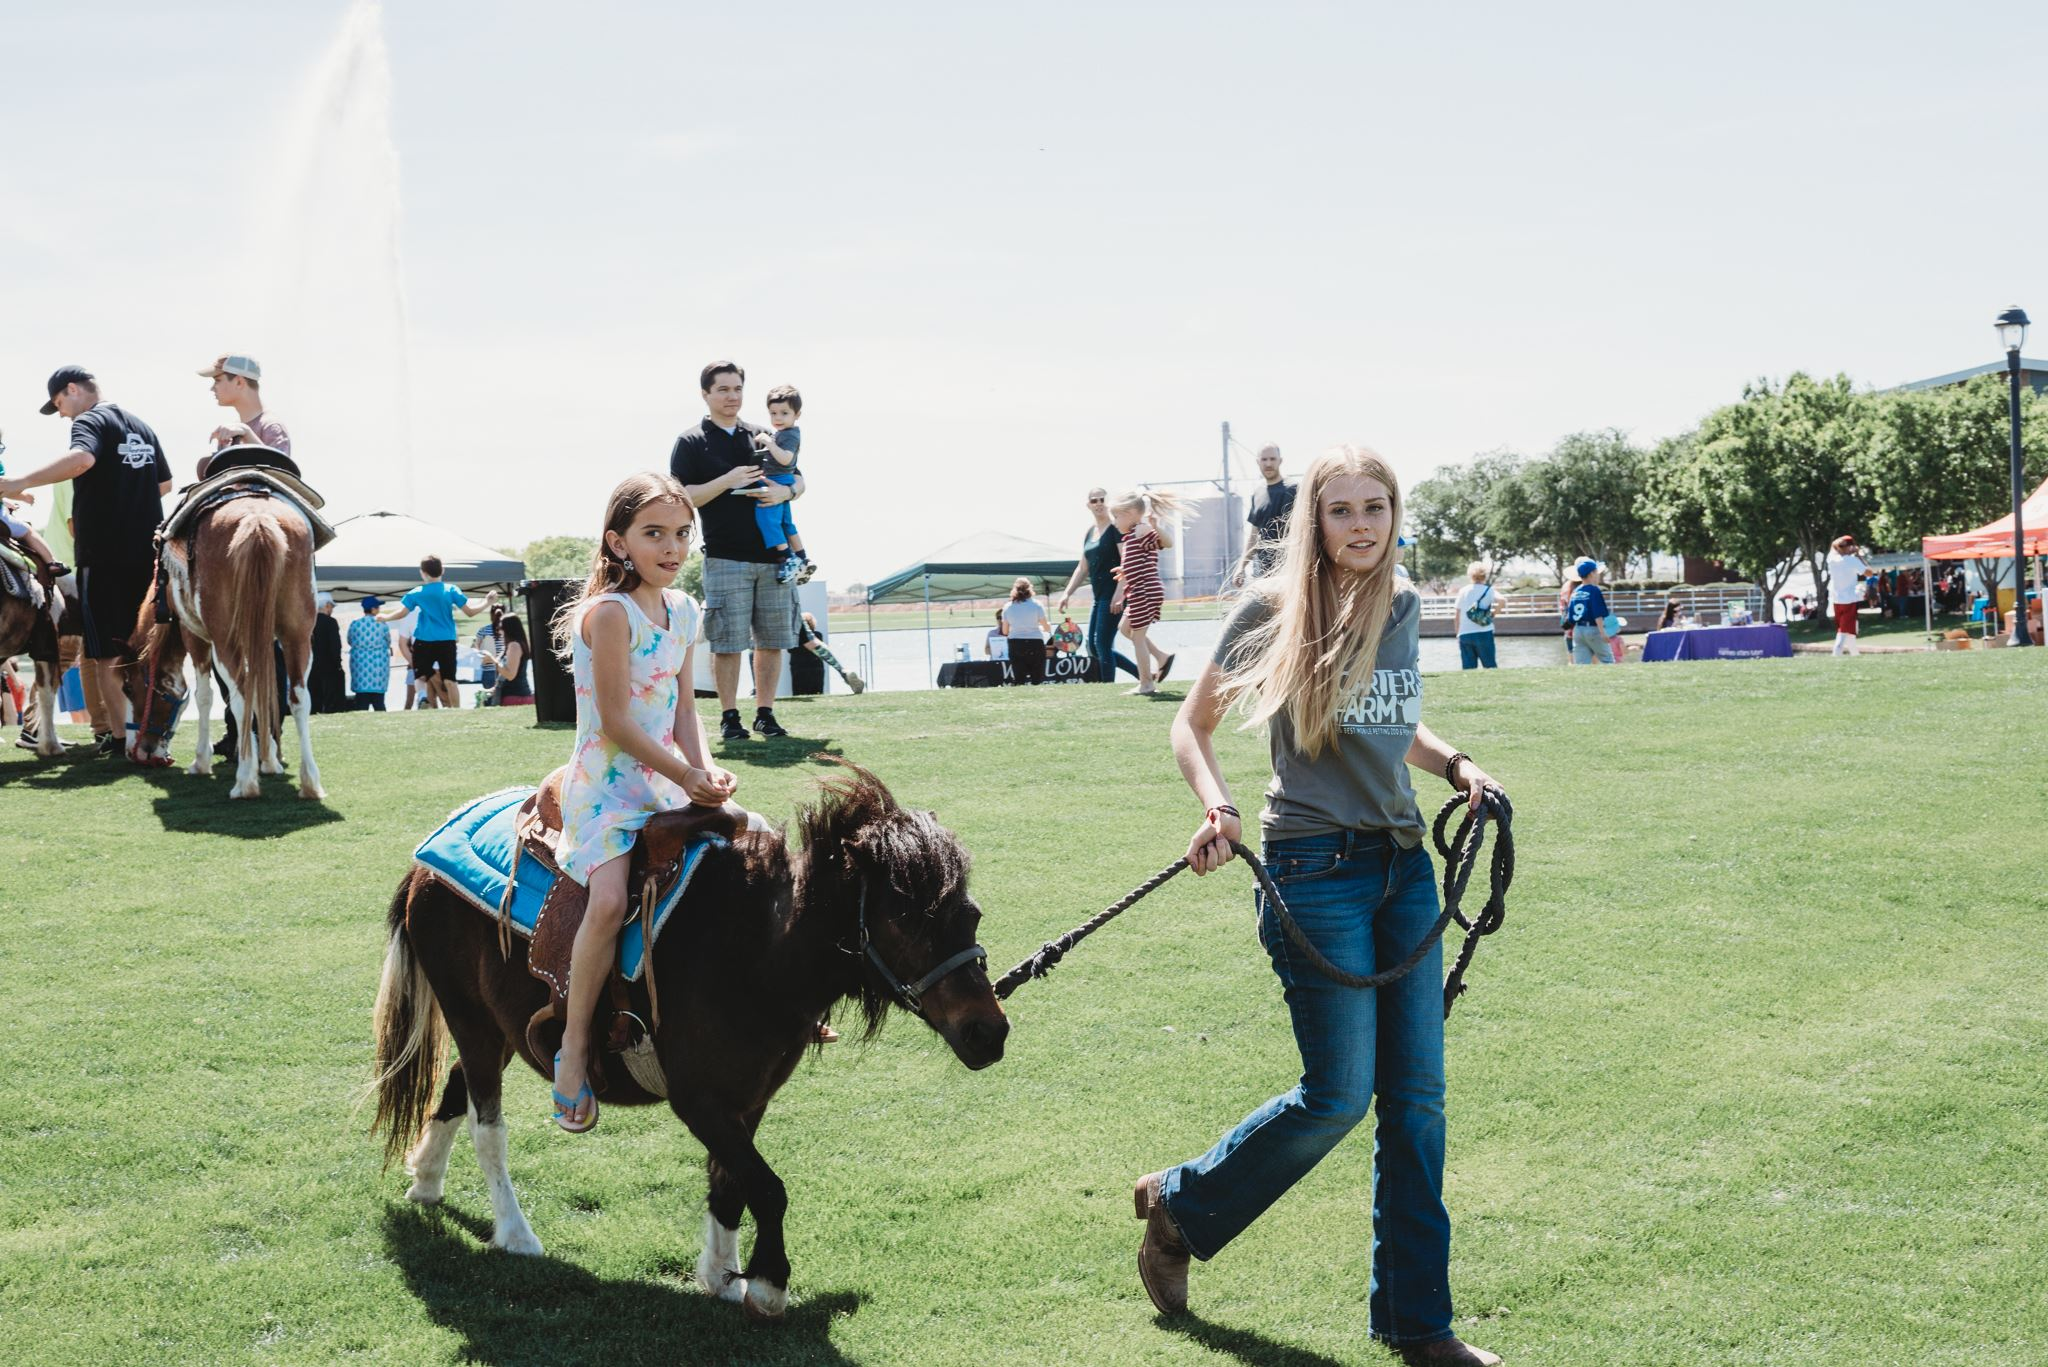 Young Girl Riding a Brown Pony Being Led by an Assistant 2